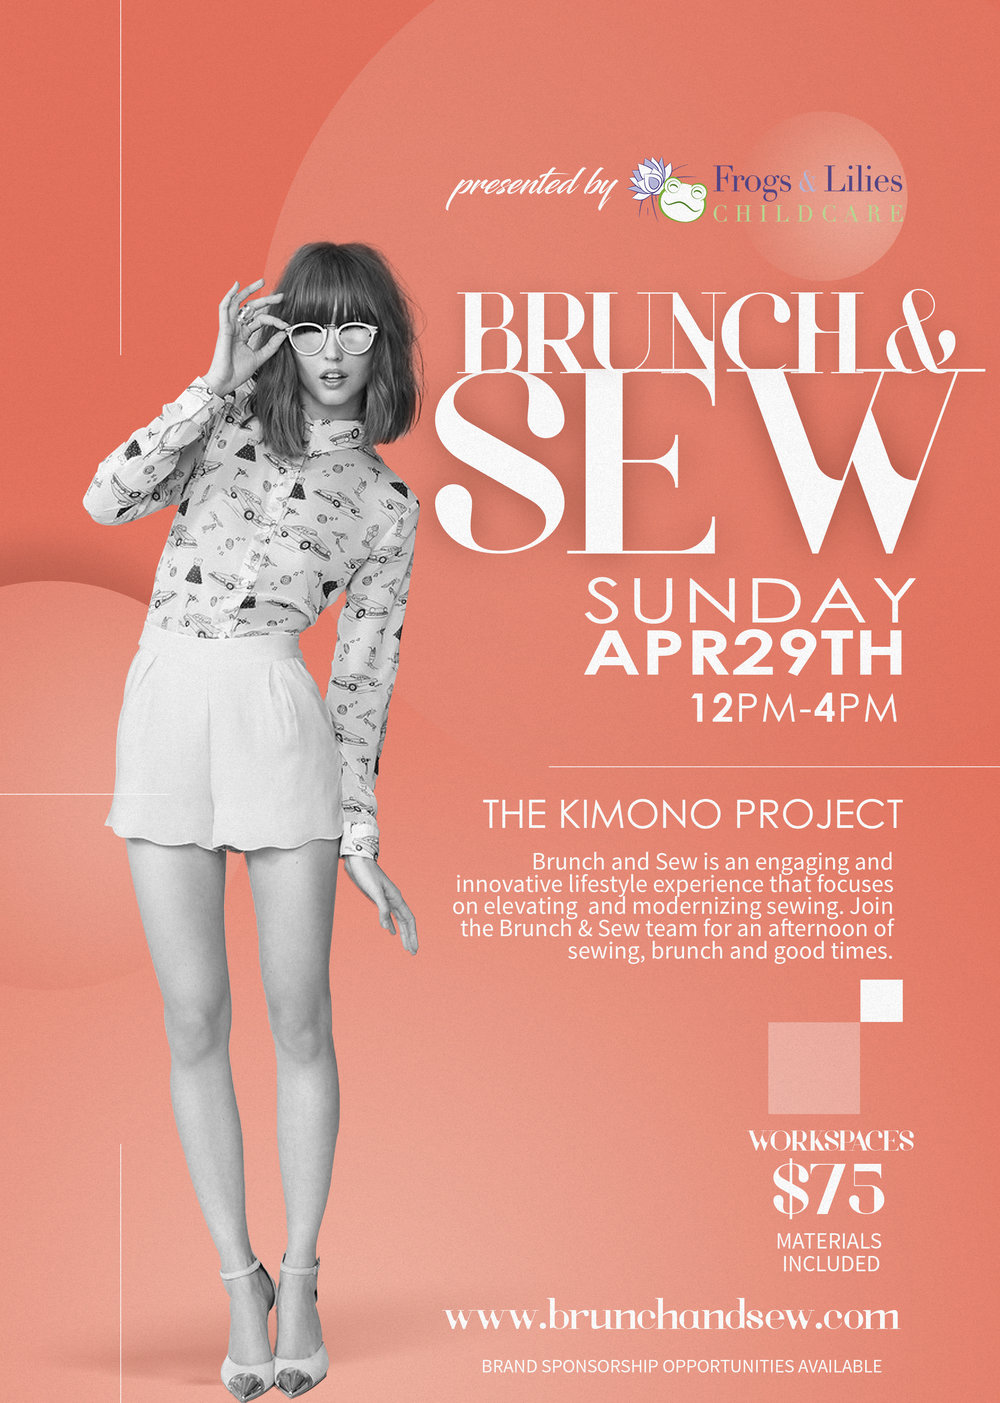 Andrea Fenise Memphis Fashion Blogger hosts Brunch and Sew workshop on April 29th, 2018